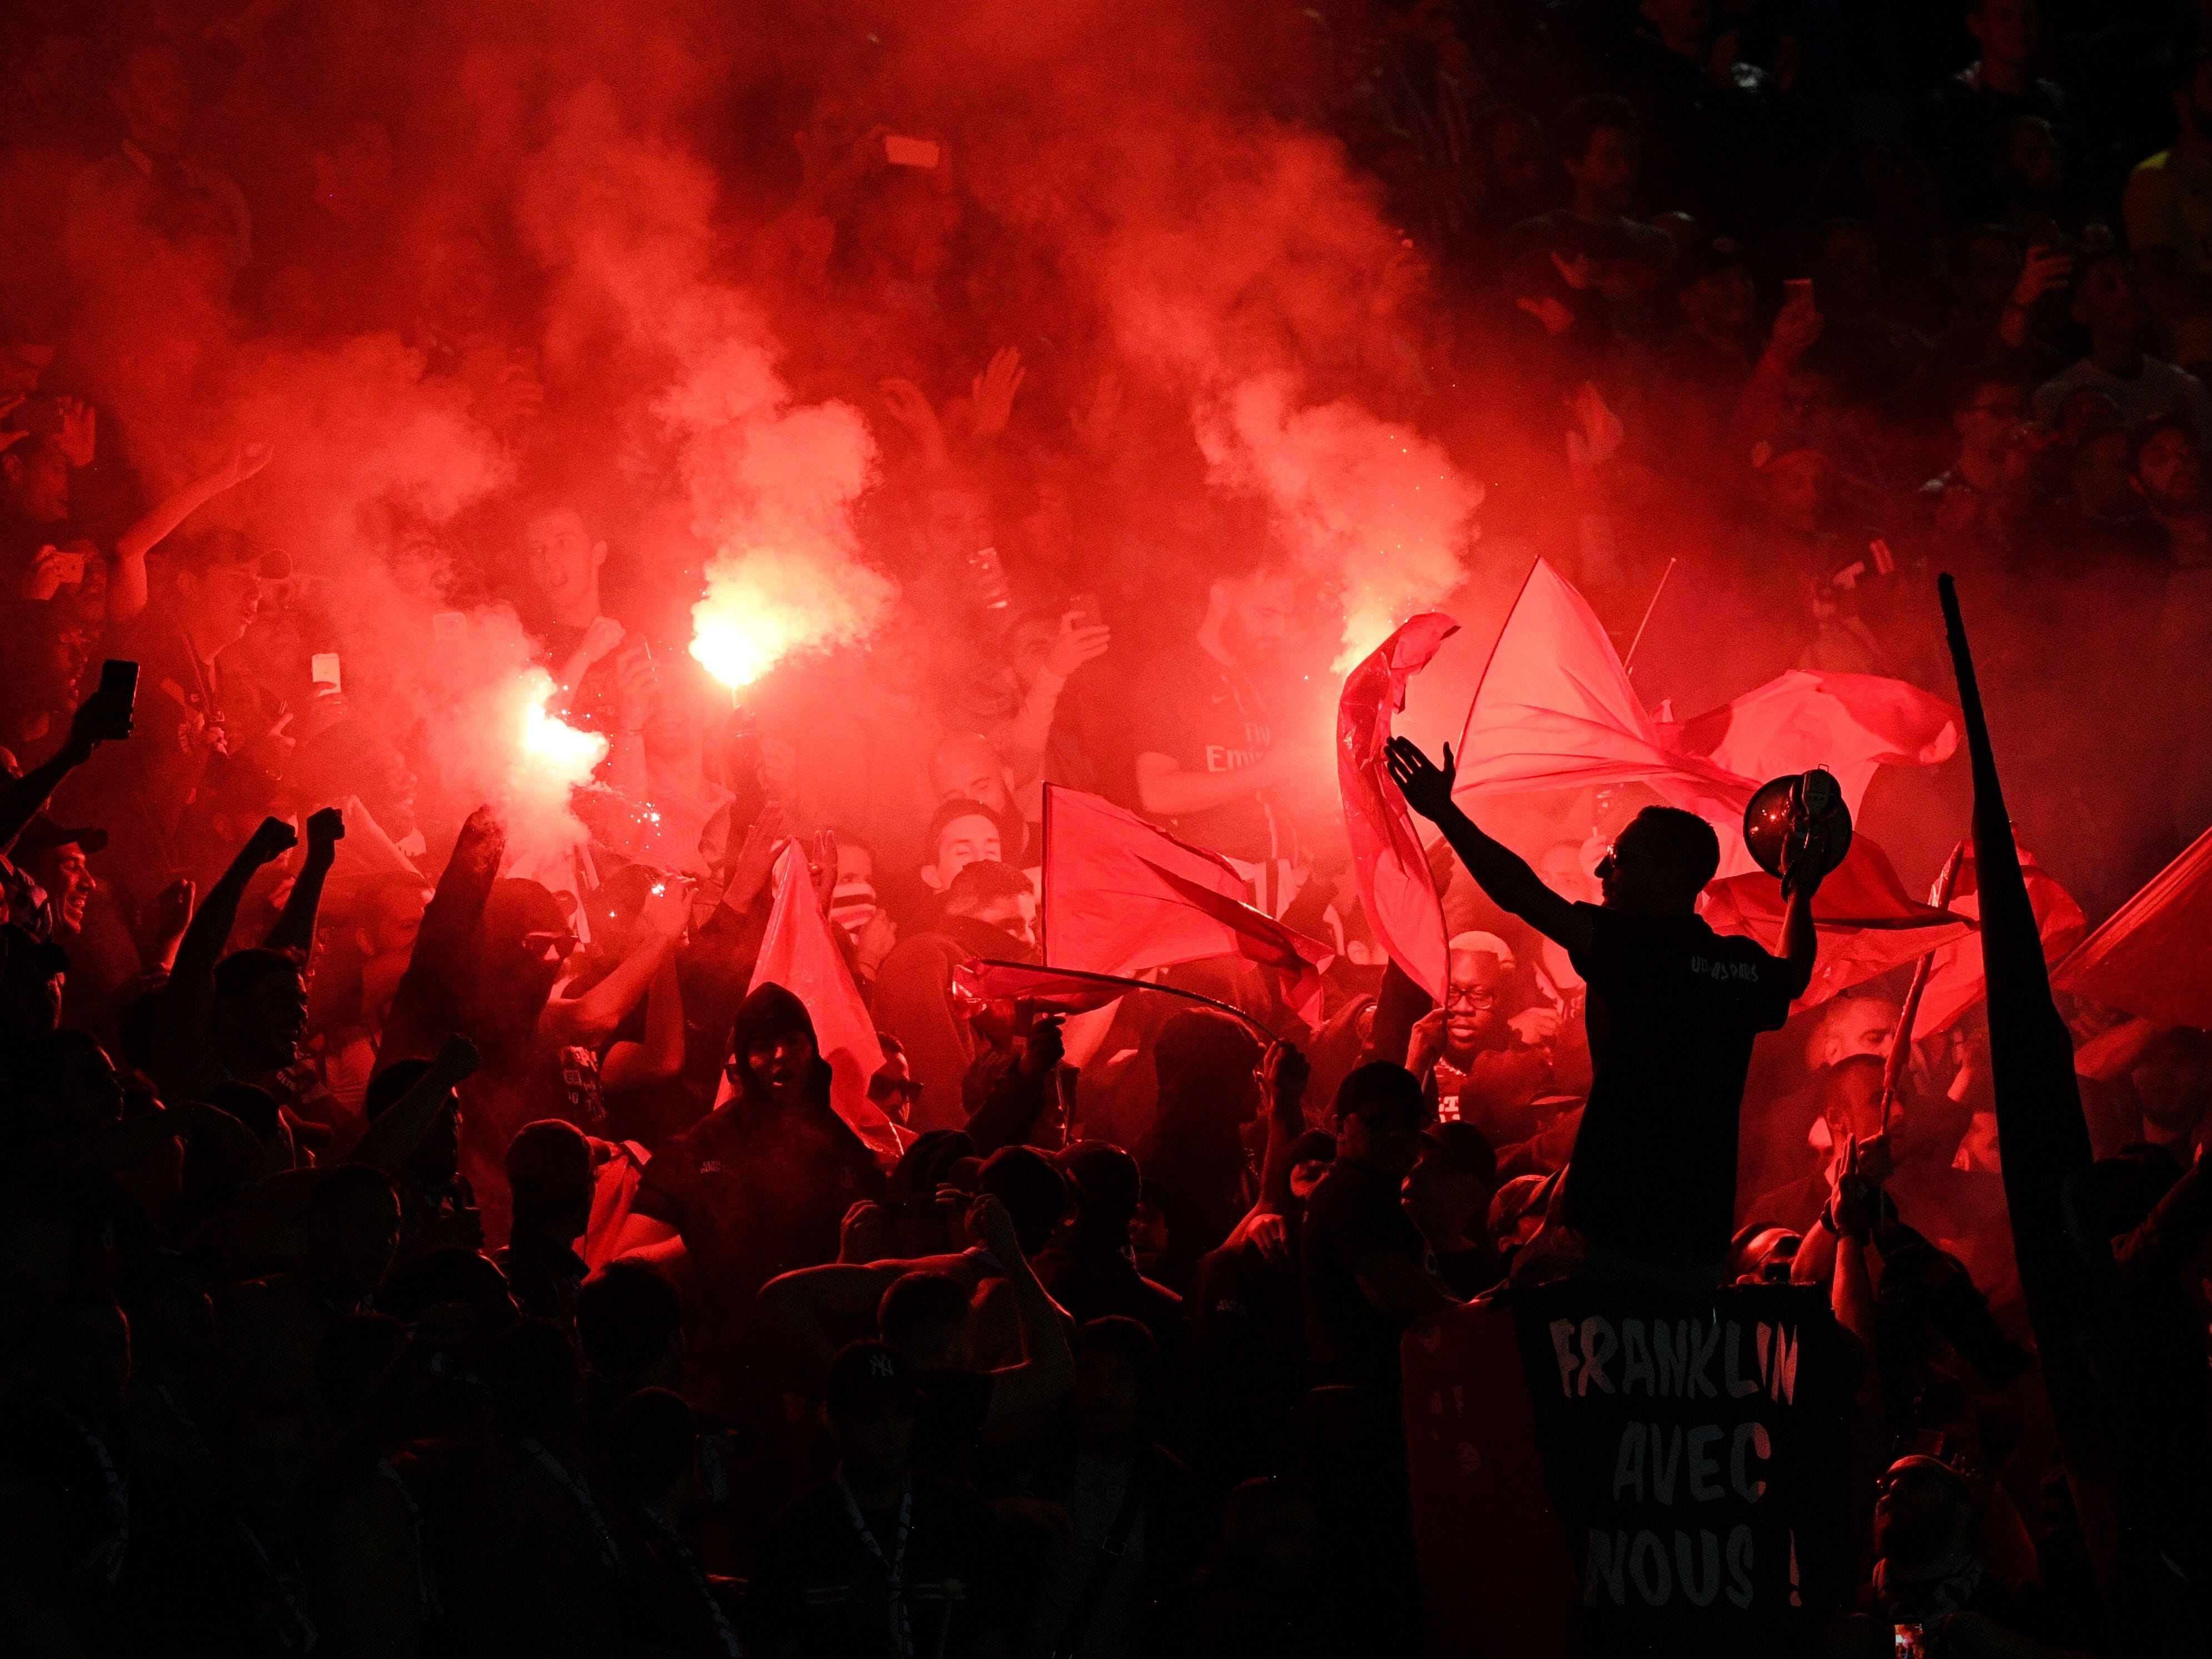 Paris Saint-Germain's supporters cheer and burn flares  during the French L1 football match between Paris Saint-Germain (PSG) and Saint-Etienne (ASSE) at the Parc des Princes stadium in Paris on September 14, 2018.